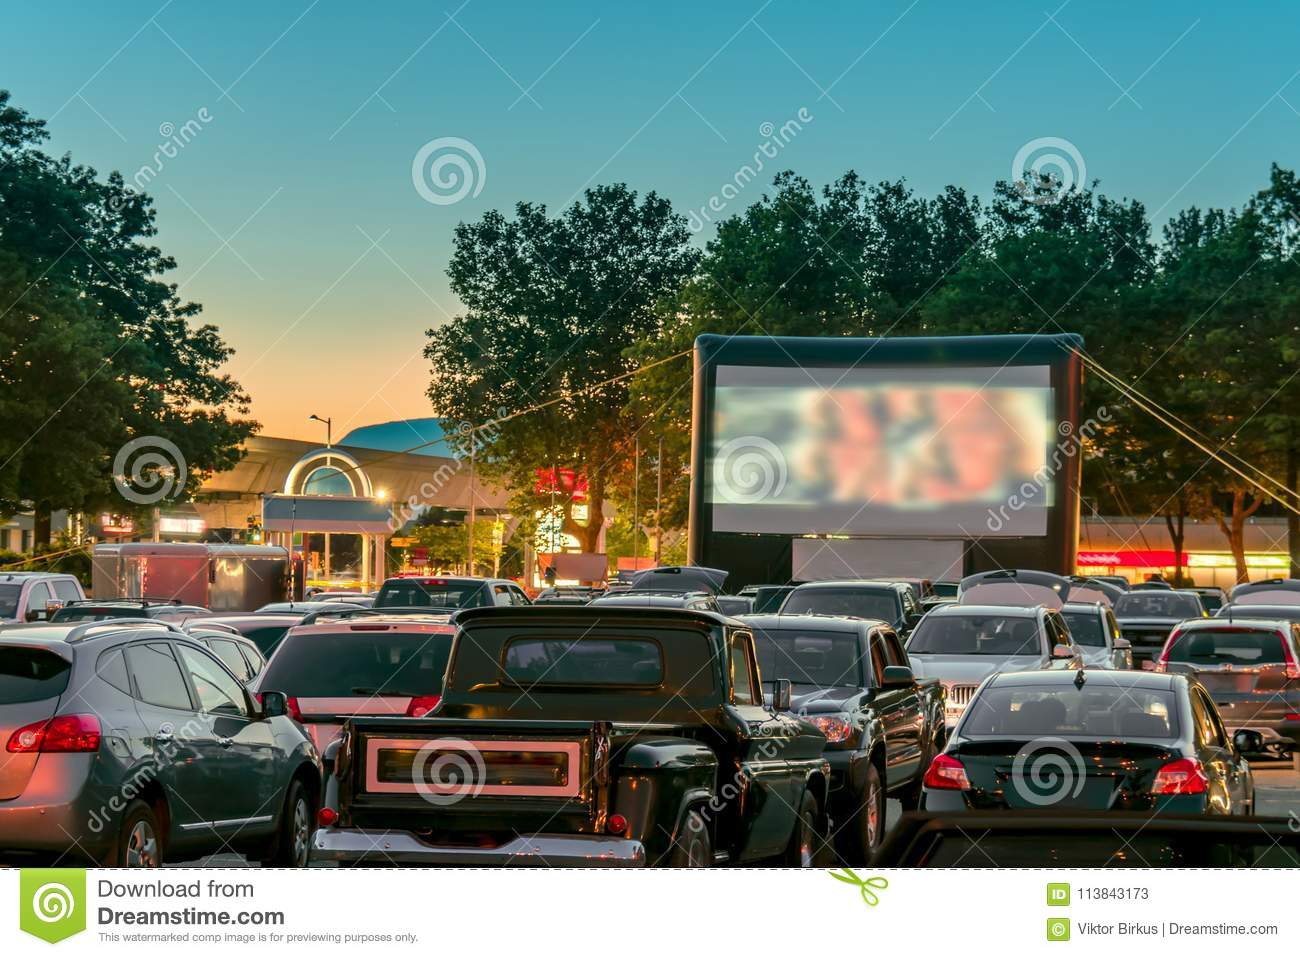 Watching Movies Outdoors From The Car In The City Parking Lot Stock Image Image Of Light Family 113843173